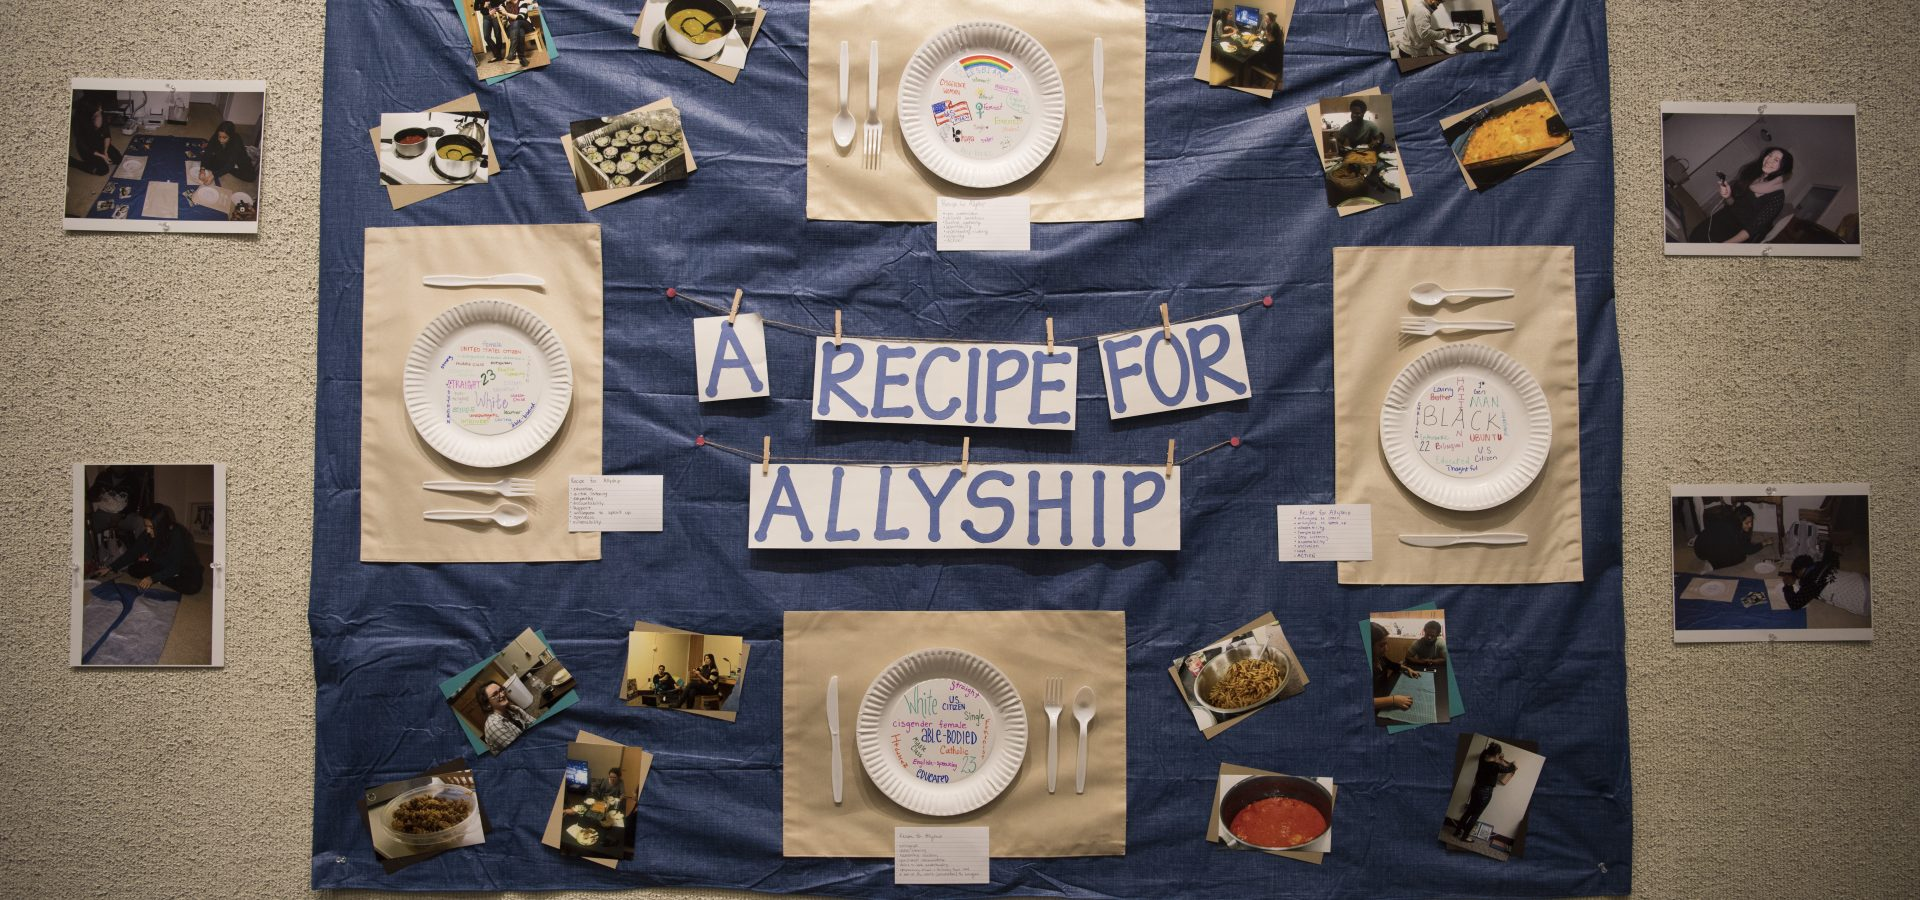 Allyship a recipe for allyship artwork